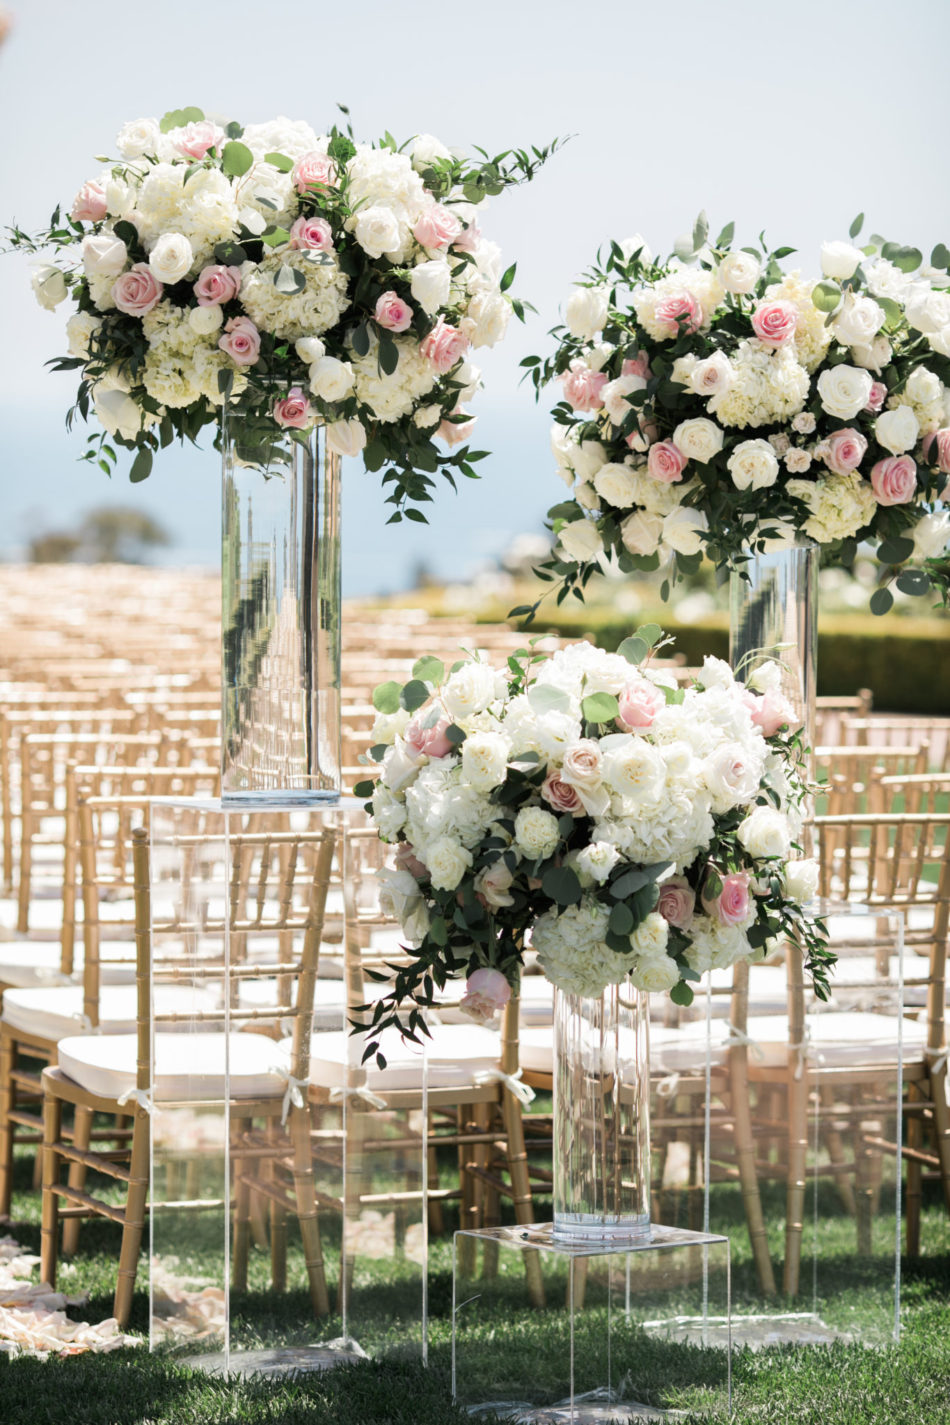 blush florals, elevated floral arrangements, blush floral decor, floral design, florist, wedding florist, wedding flowers, orange county weddings, orange county wedding florist, orange county florist, orange county floral design, flowers by cina